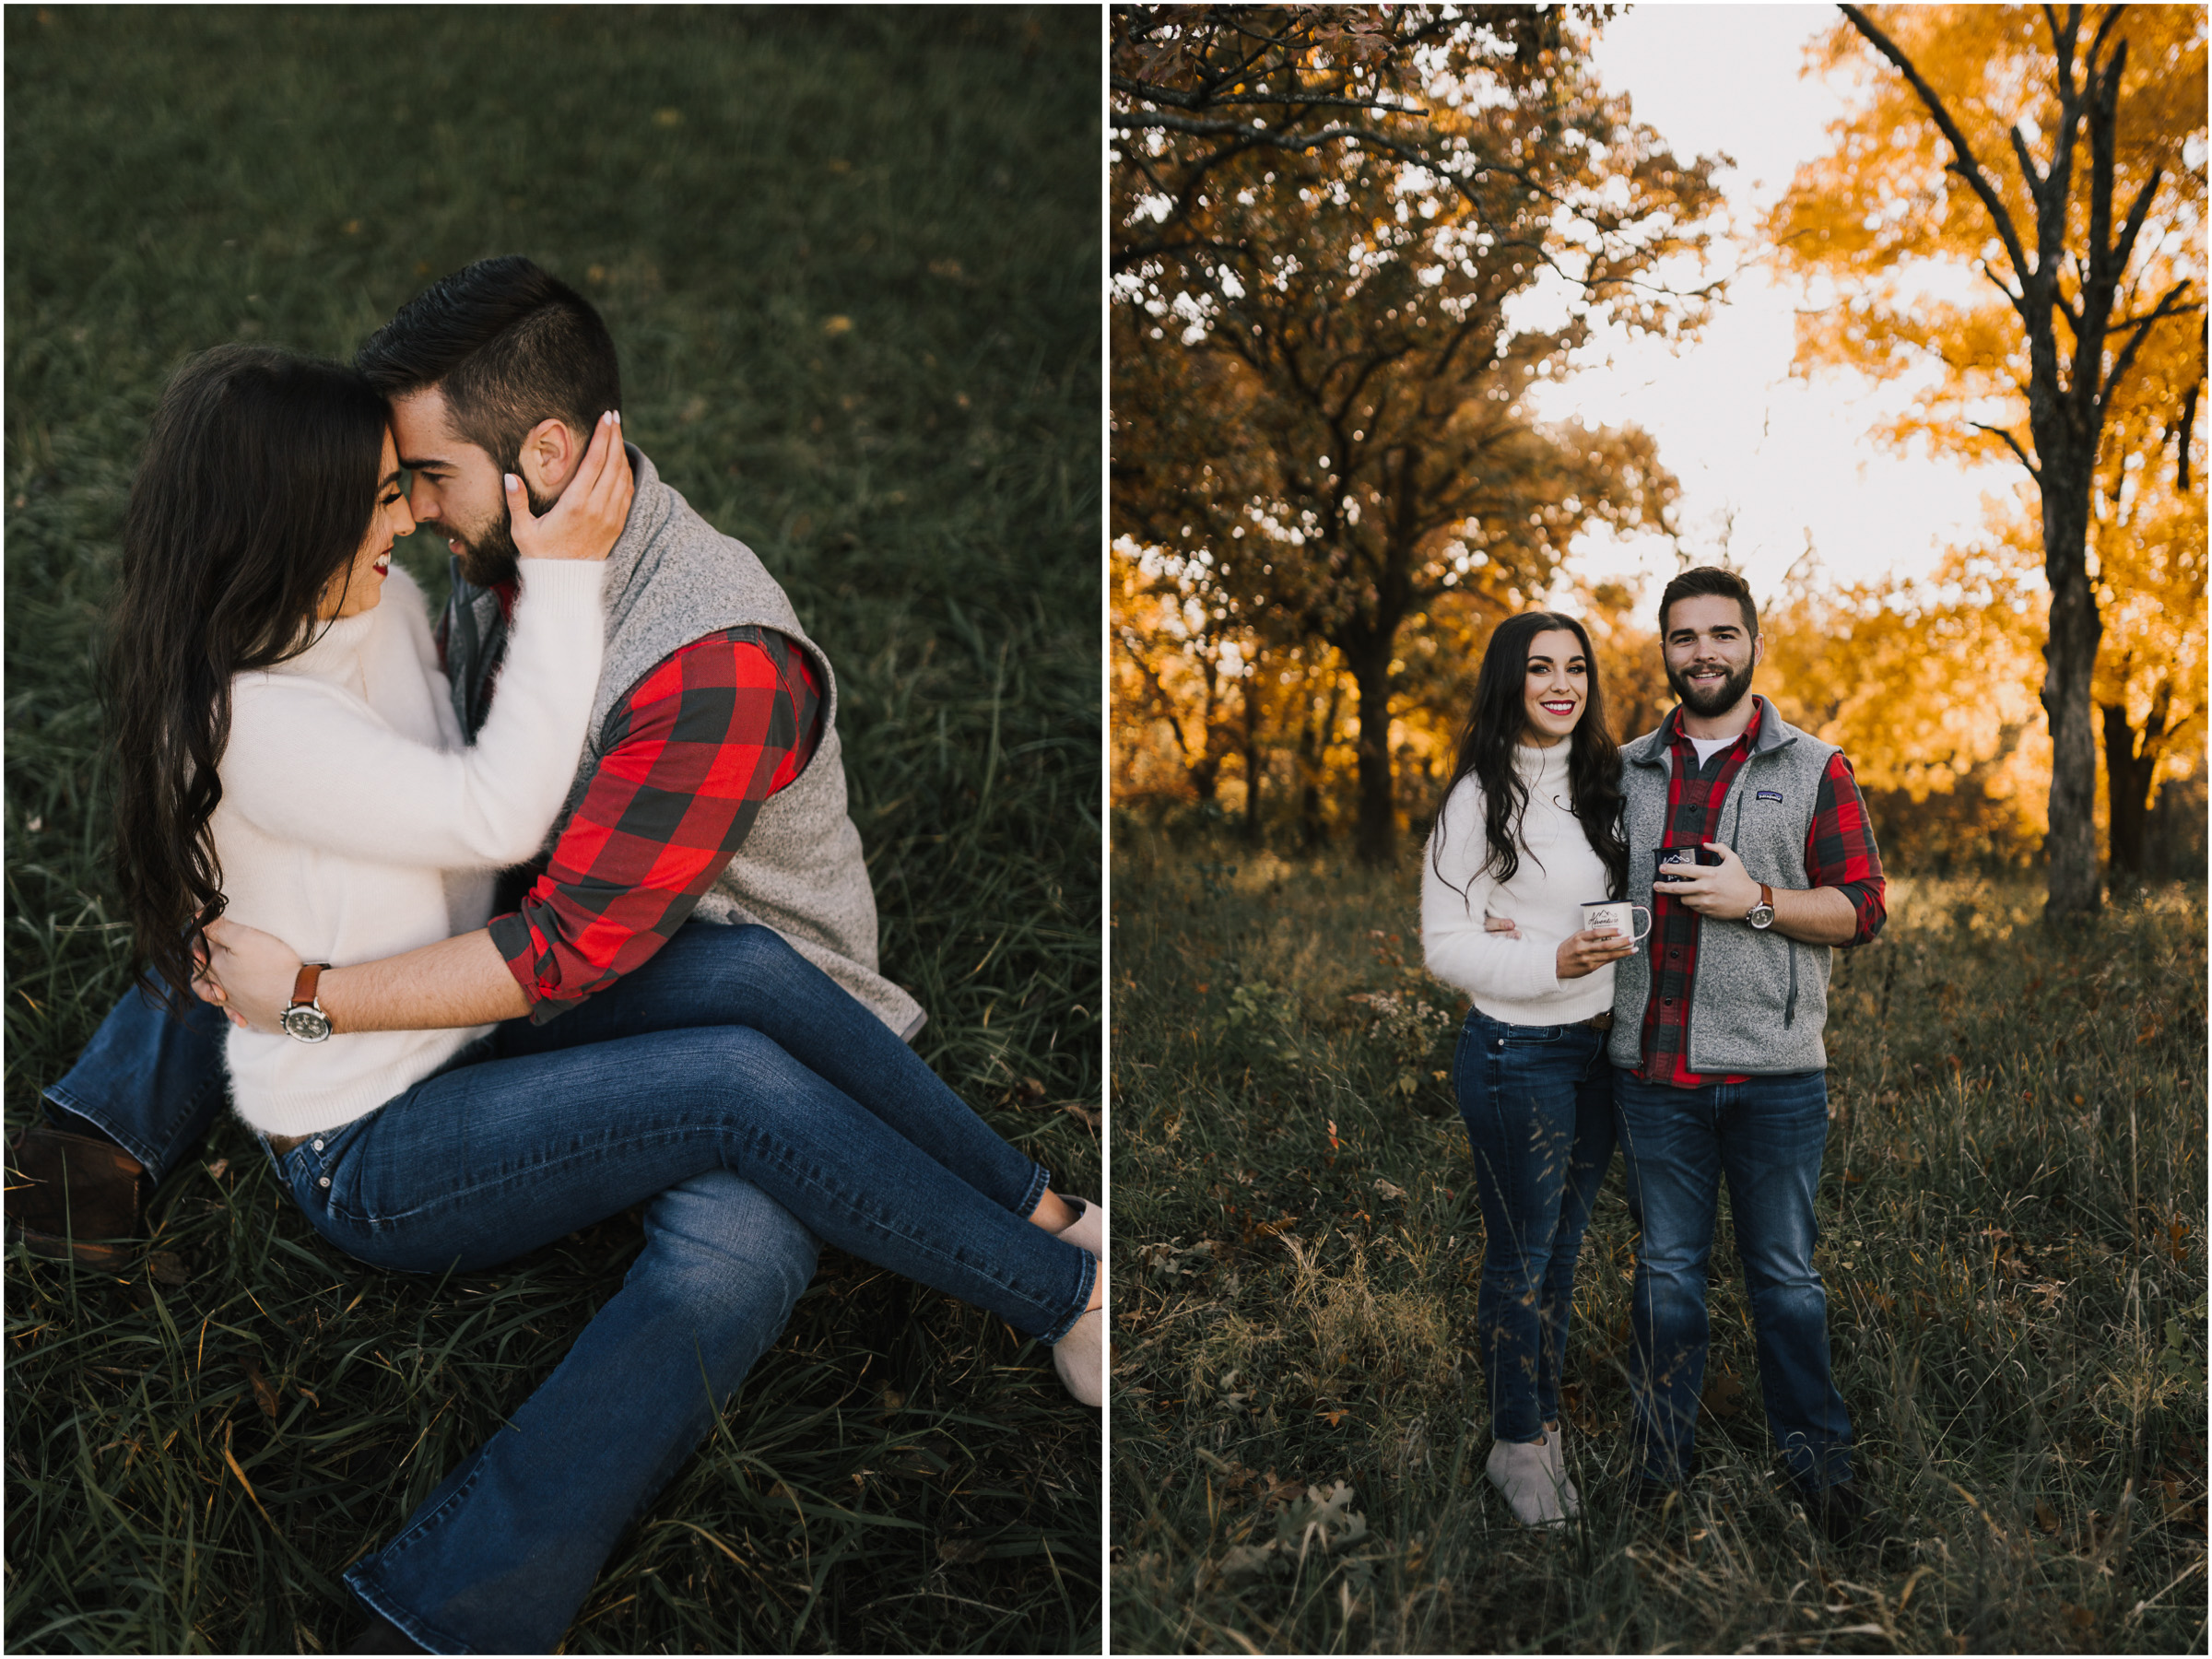 alyssa barletter photography shawnee mission park fall engagement photographer a girl her life blogger sunset photos-17.jpg